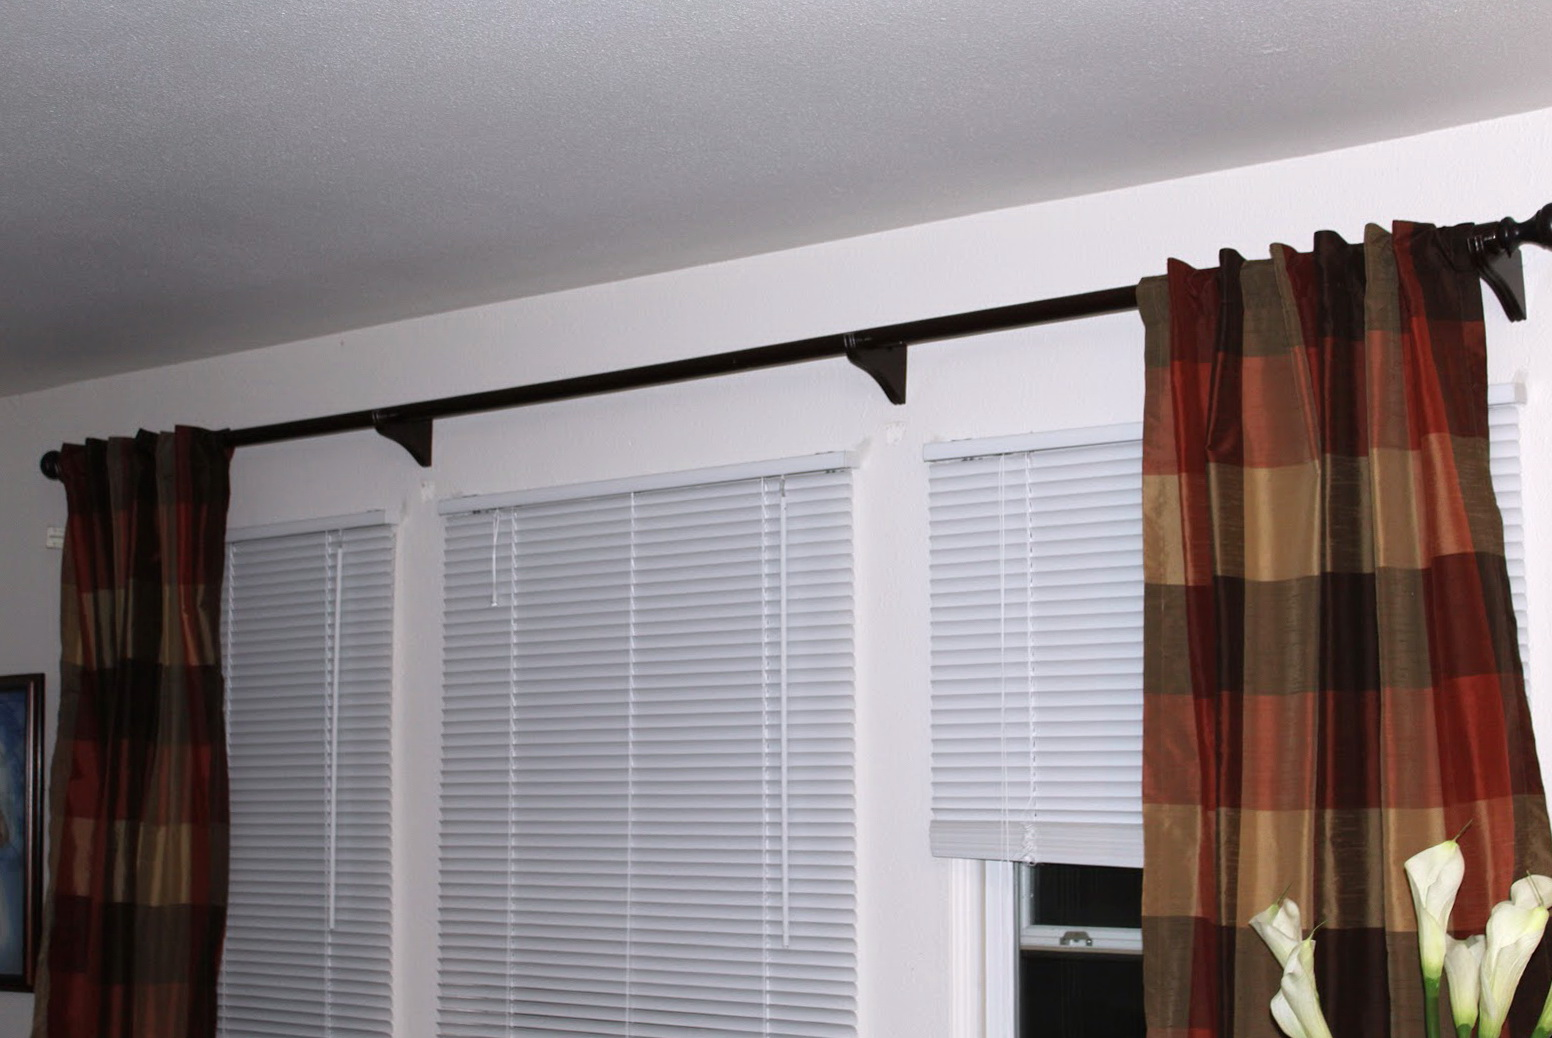 144 Curtain Rod Home Depot Home Design Ideas